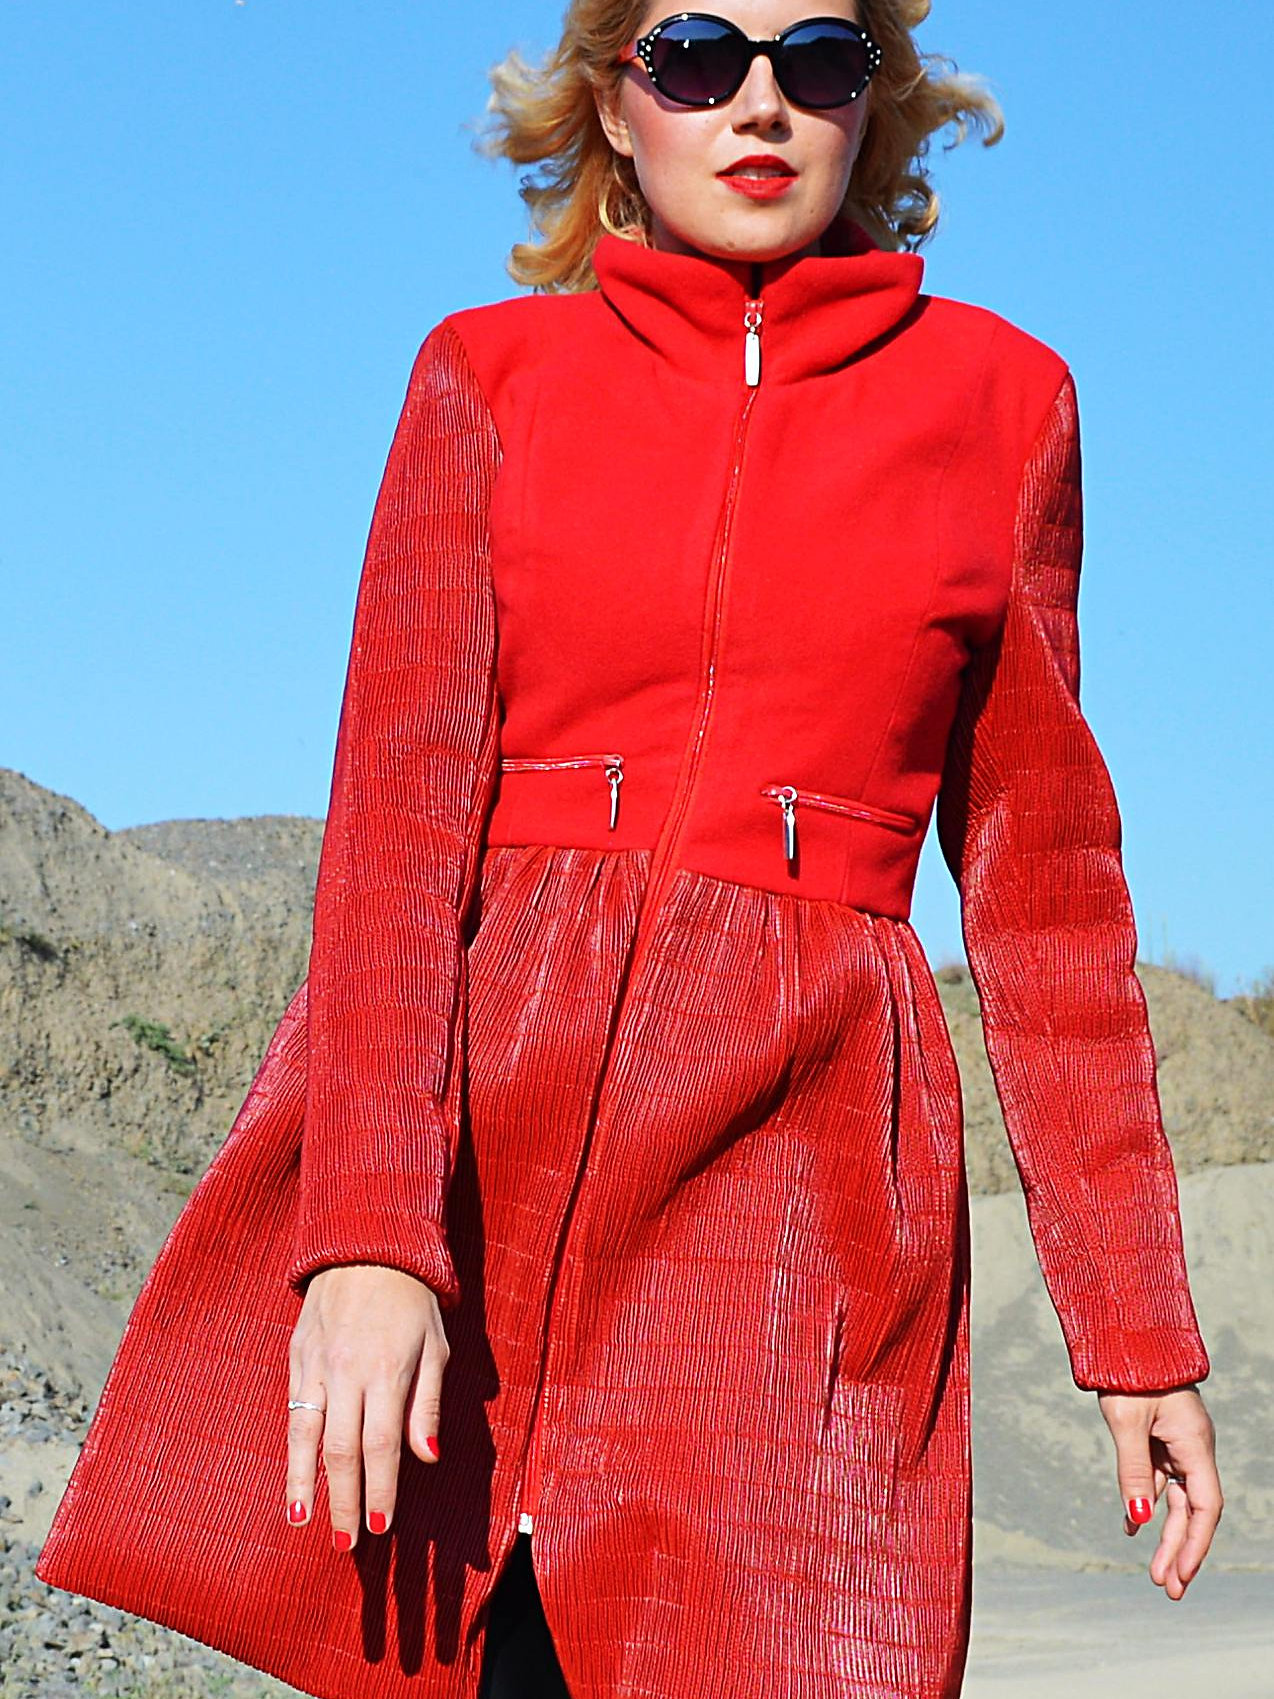 TEYXO | Clothing Store for Women | Winter Red Coat, Extravagant ...